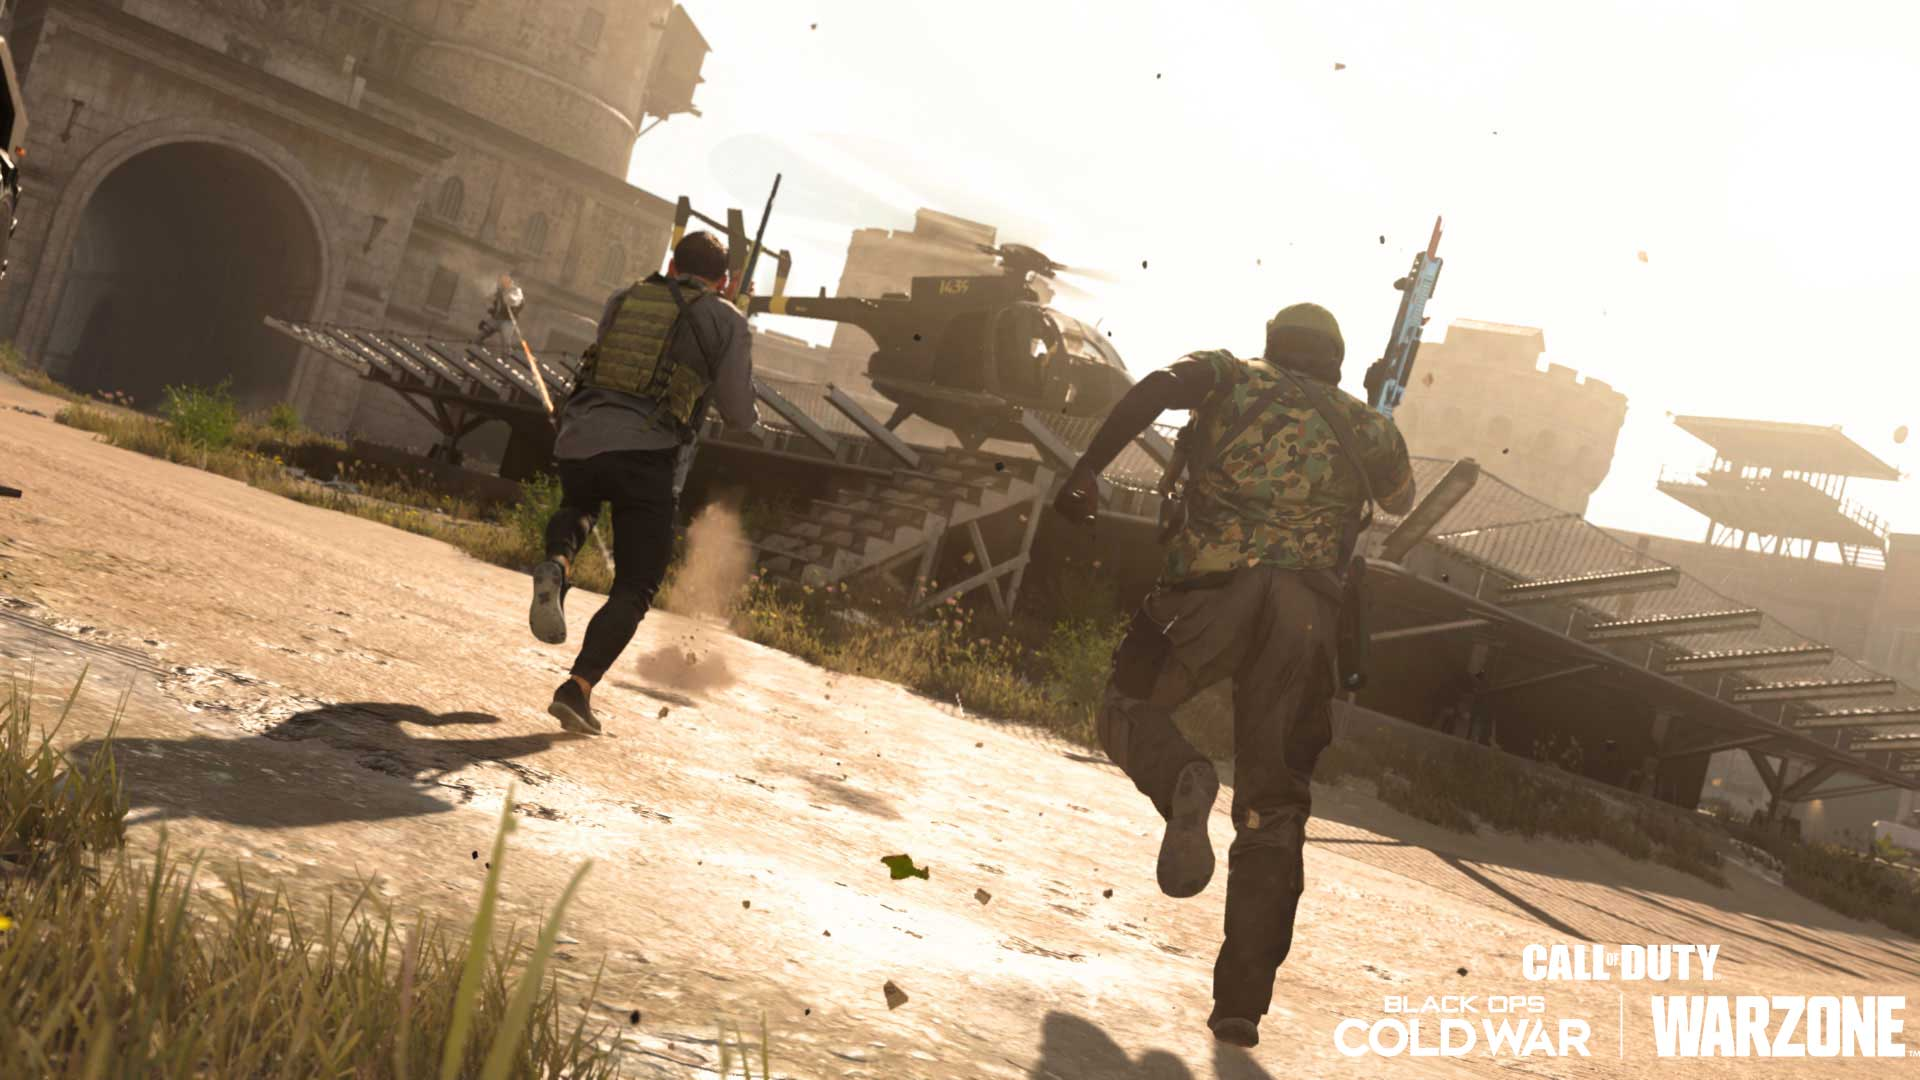 'Call of Duty: Warzone' Update 1.33 Fixes Reactive Blueprints, Not Agency—Patch Notes